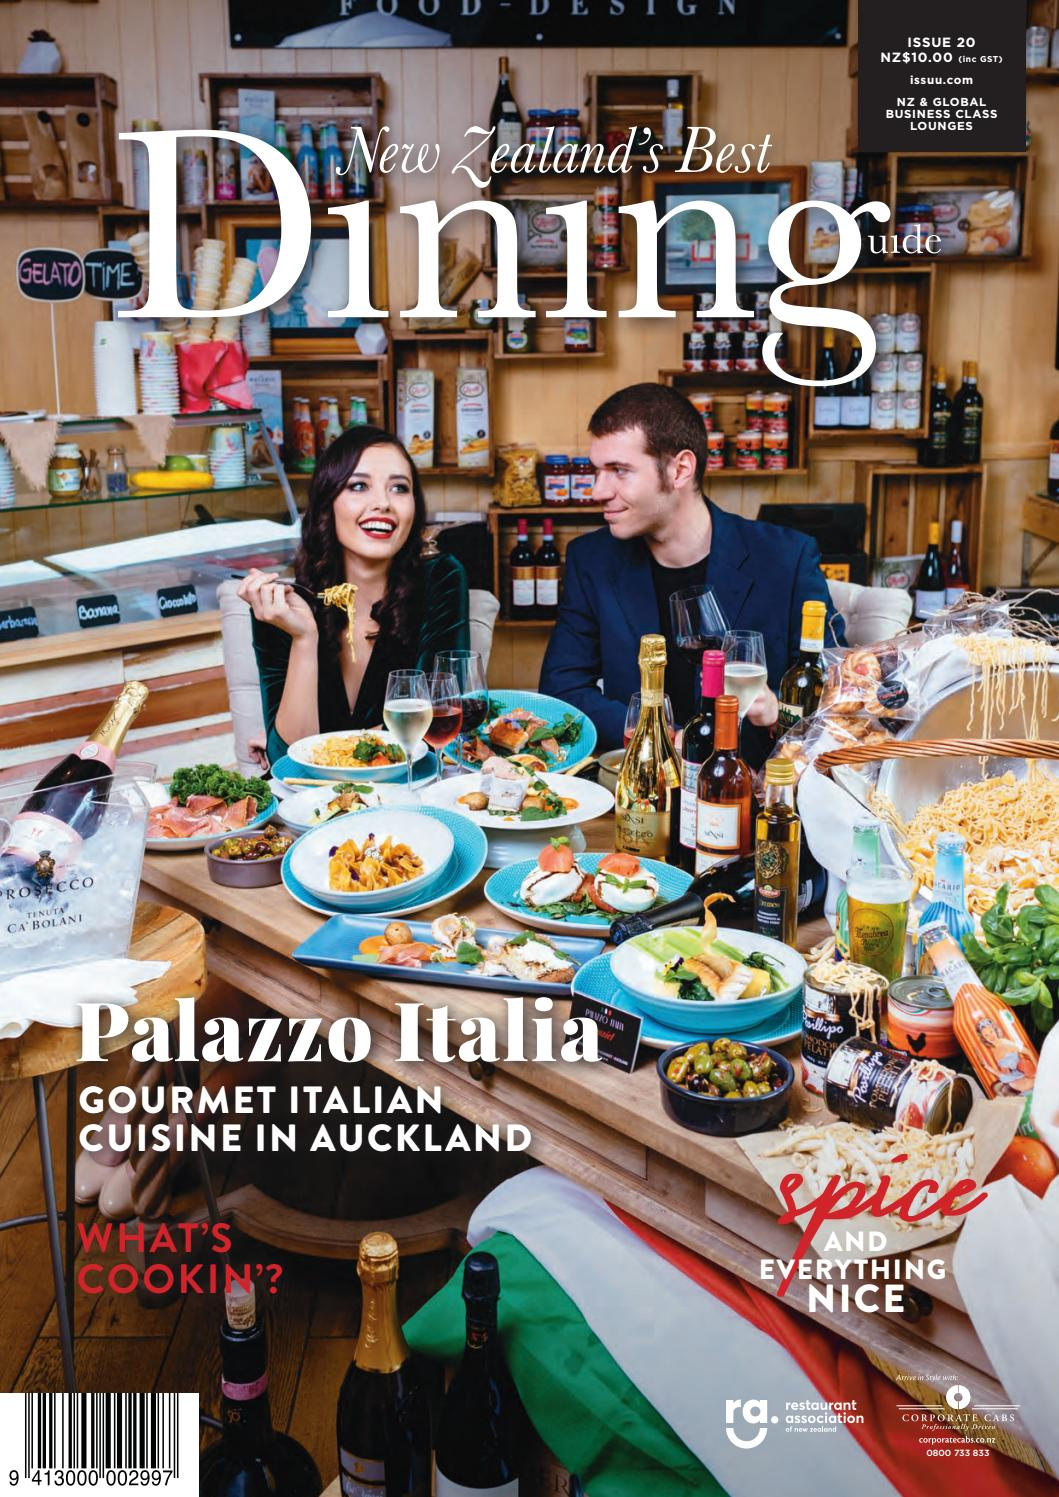 new zealand u0027s best dining guide 2017 issue 20 by multi media